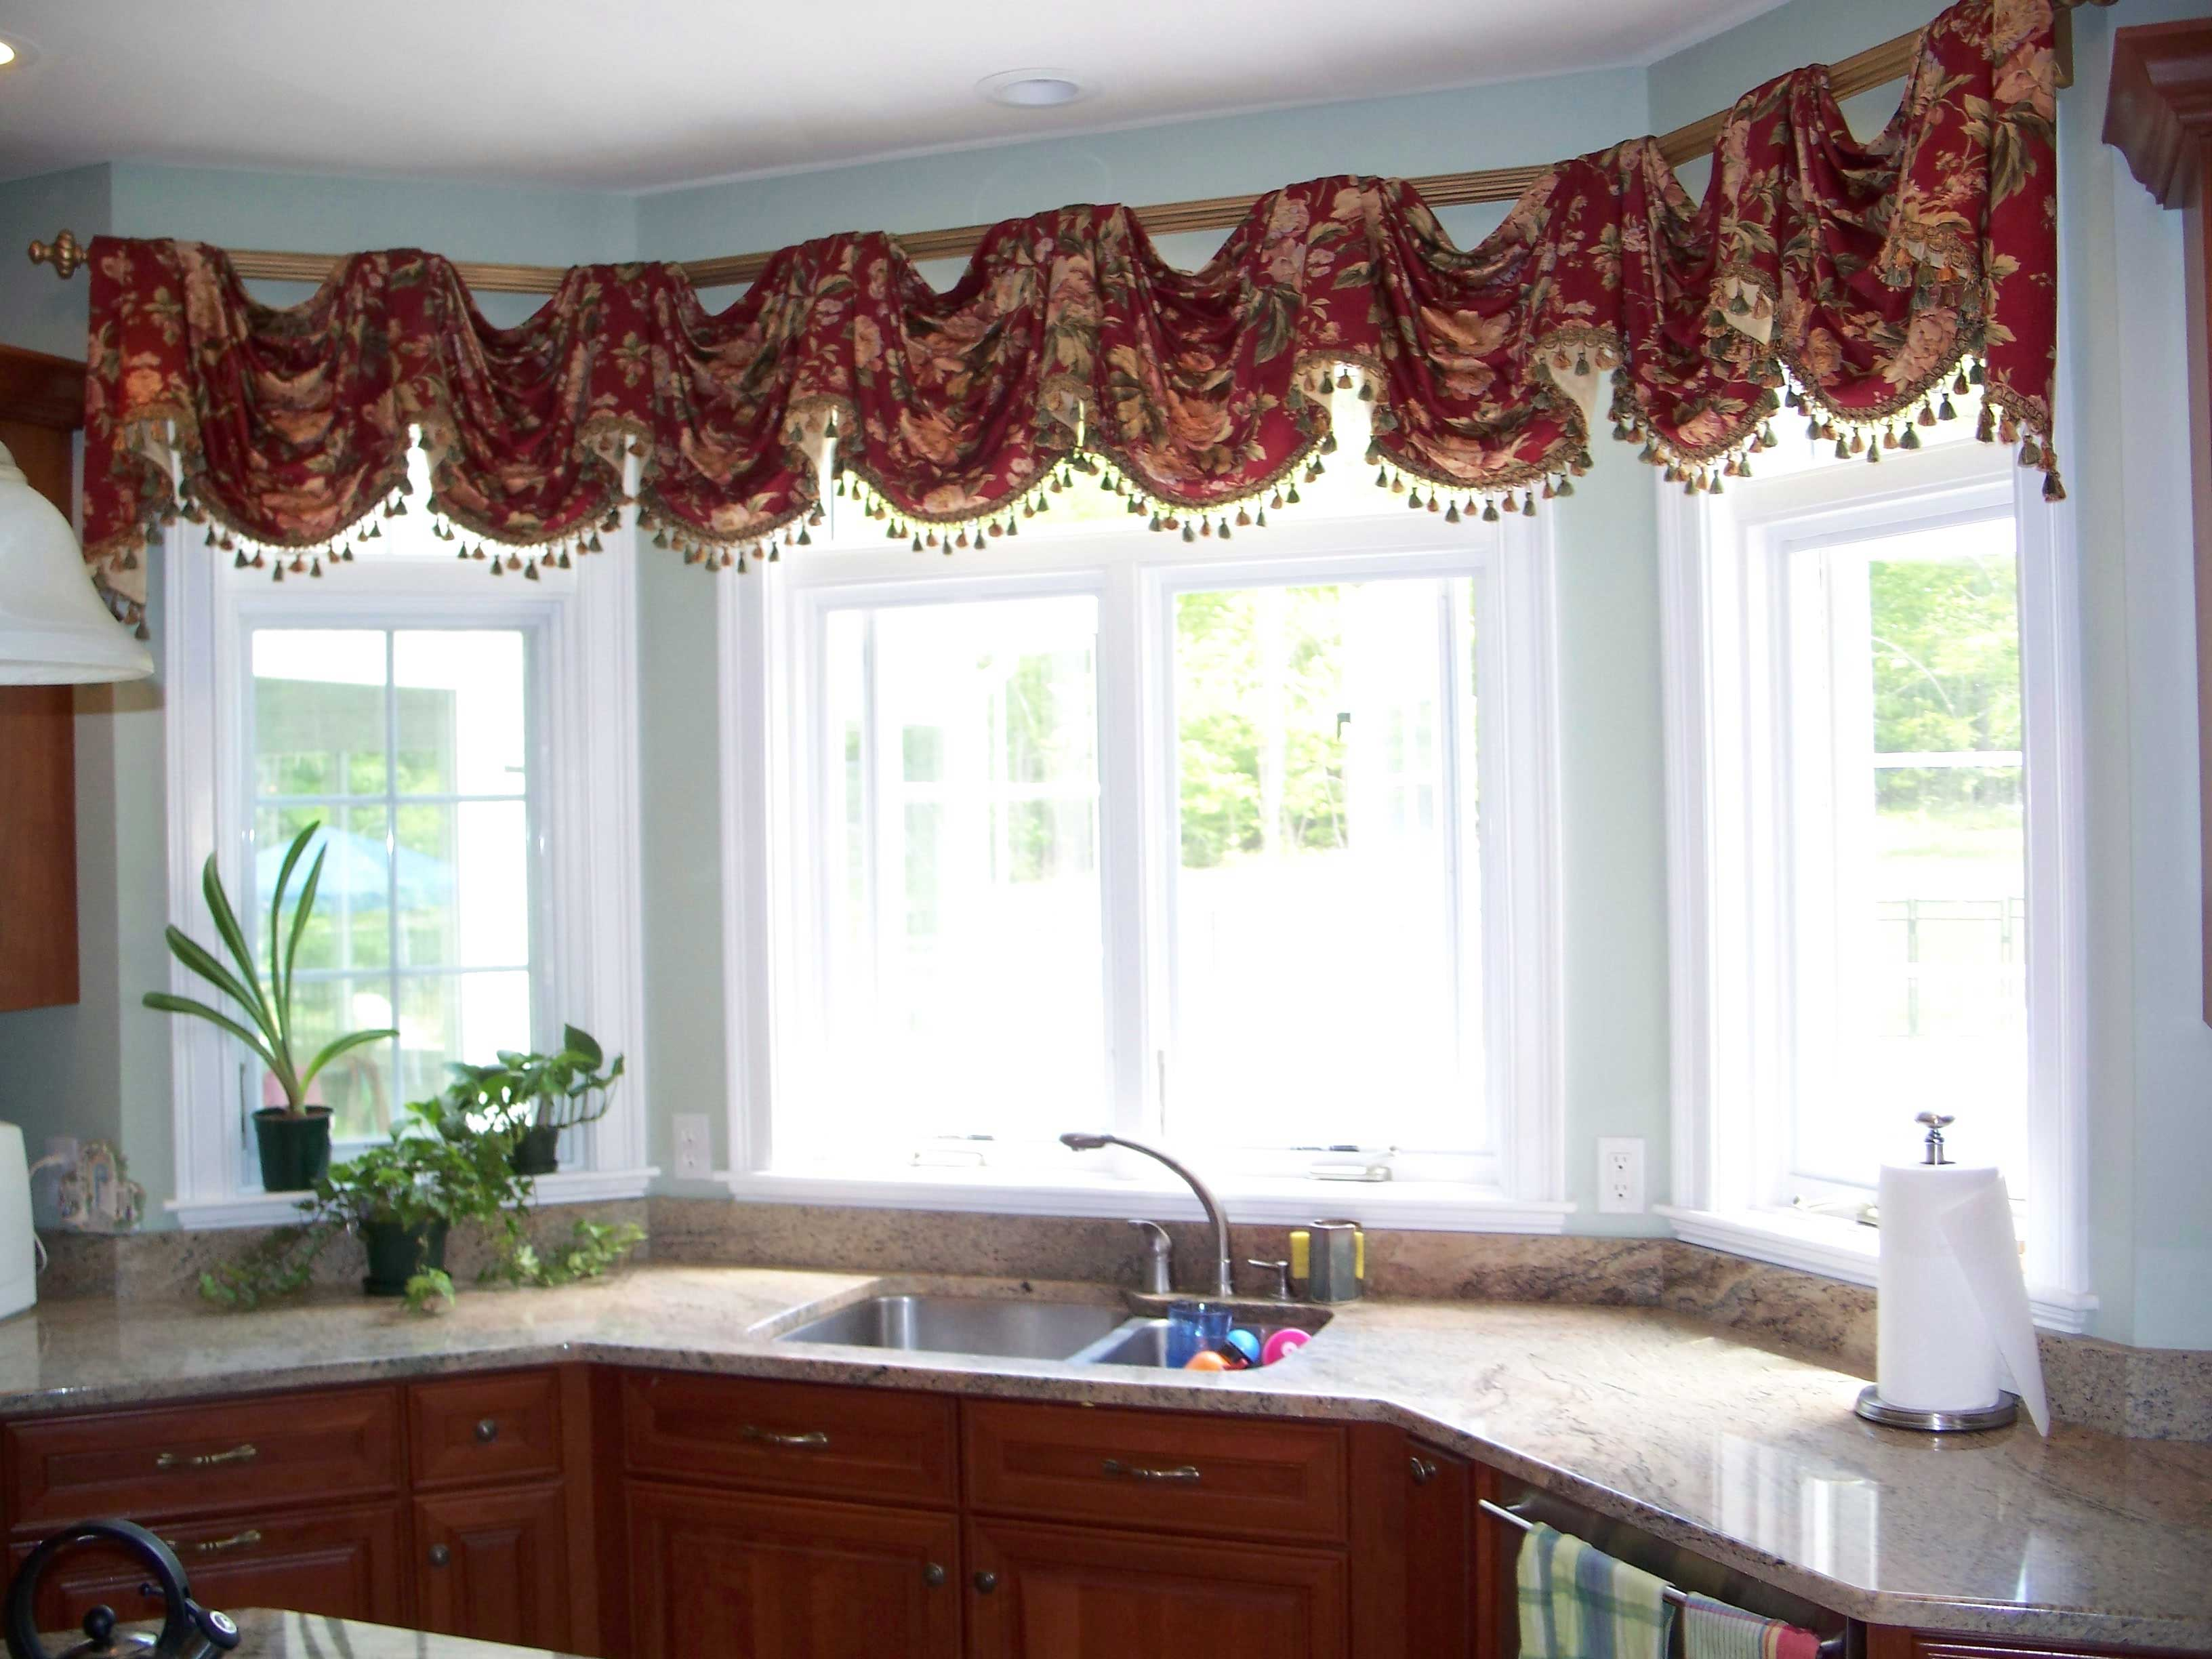 Taking Kitchen Design Ideas Using Neat Window Curtain and Lush Cabinet